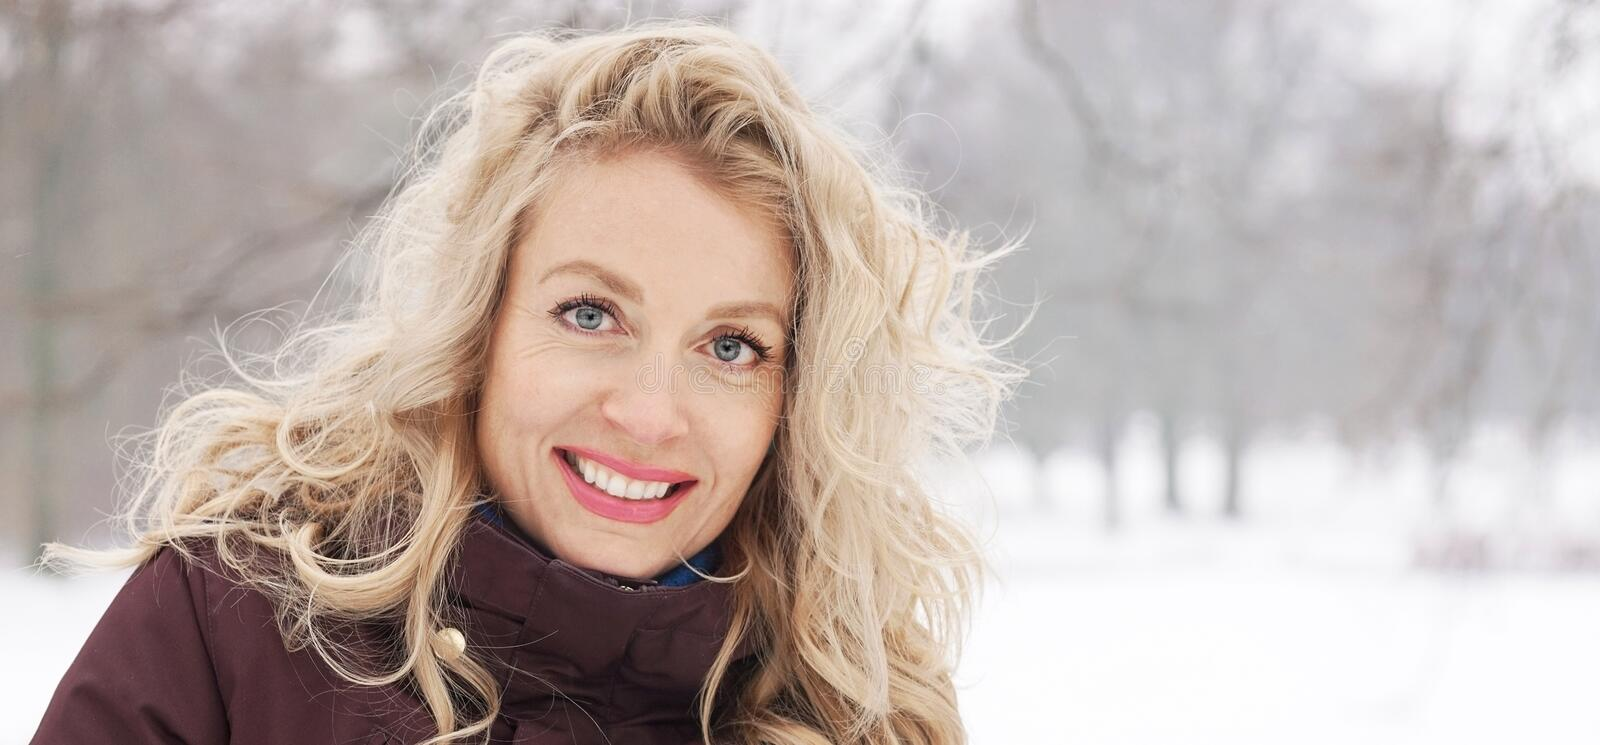 Blond woman in winter landscape banner stock image